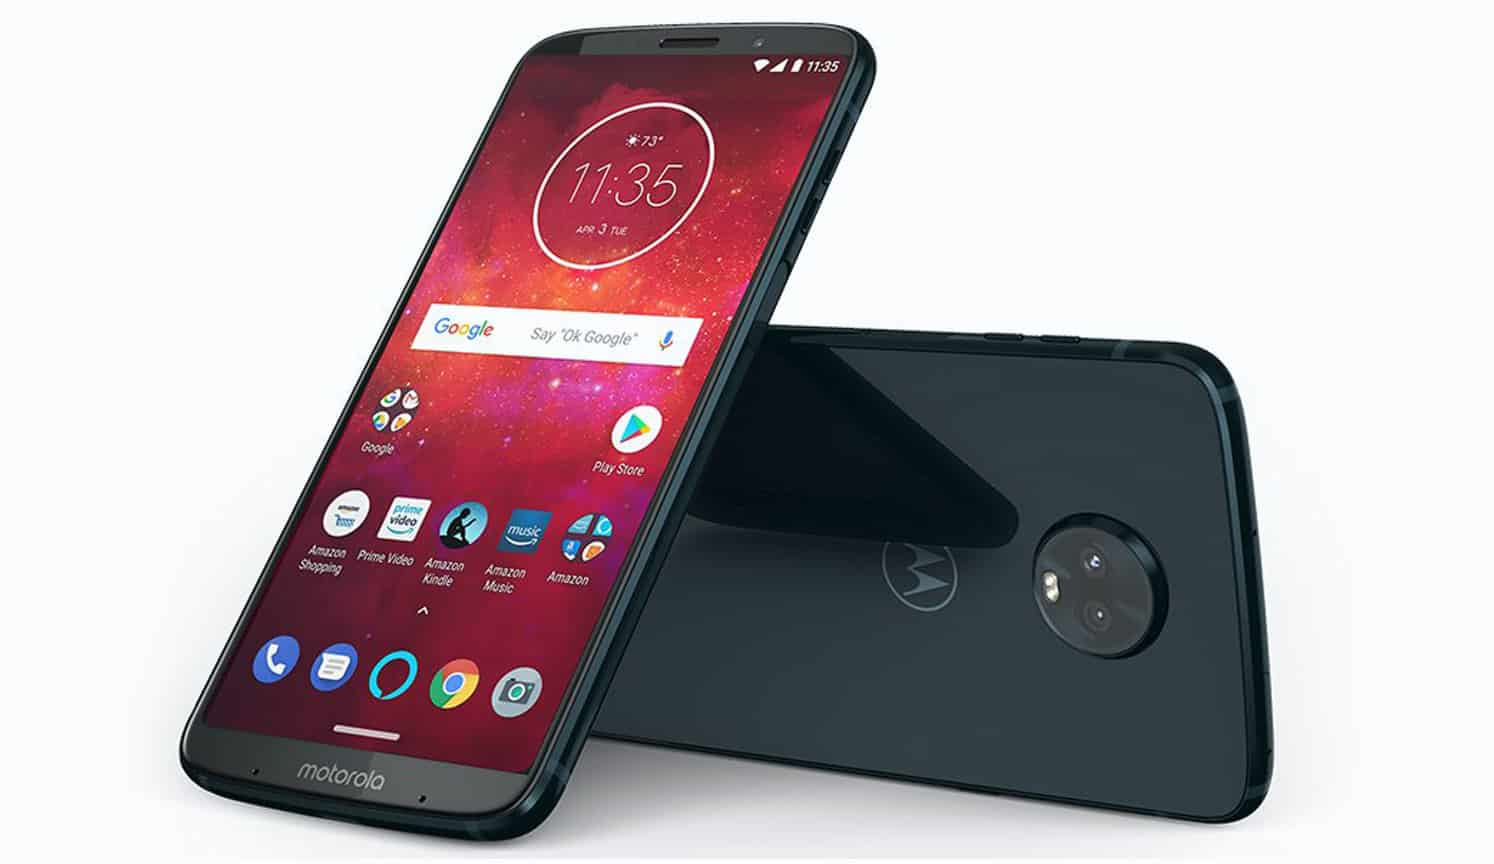 Motorola Unlocked Phones as the third related product of the Best Unlocked Smartphone